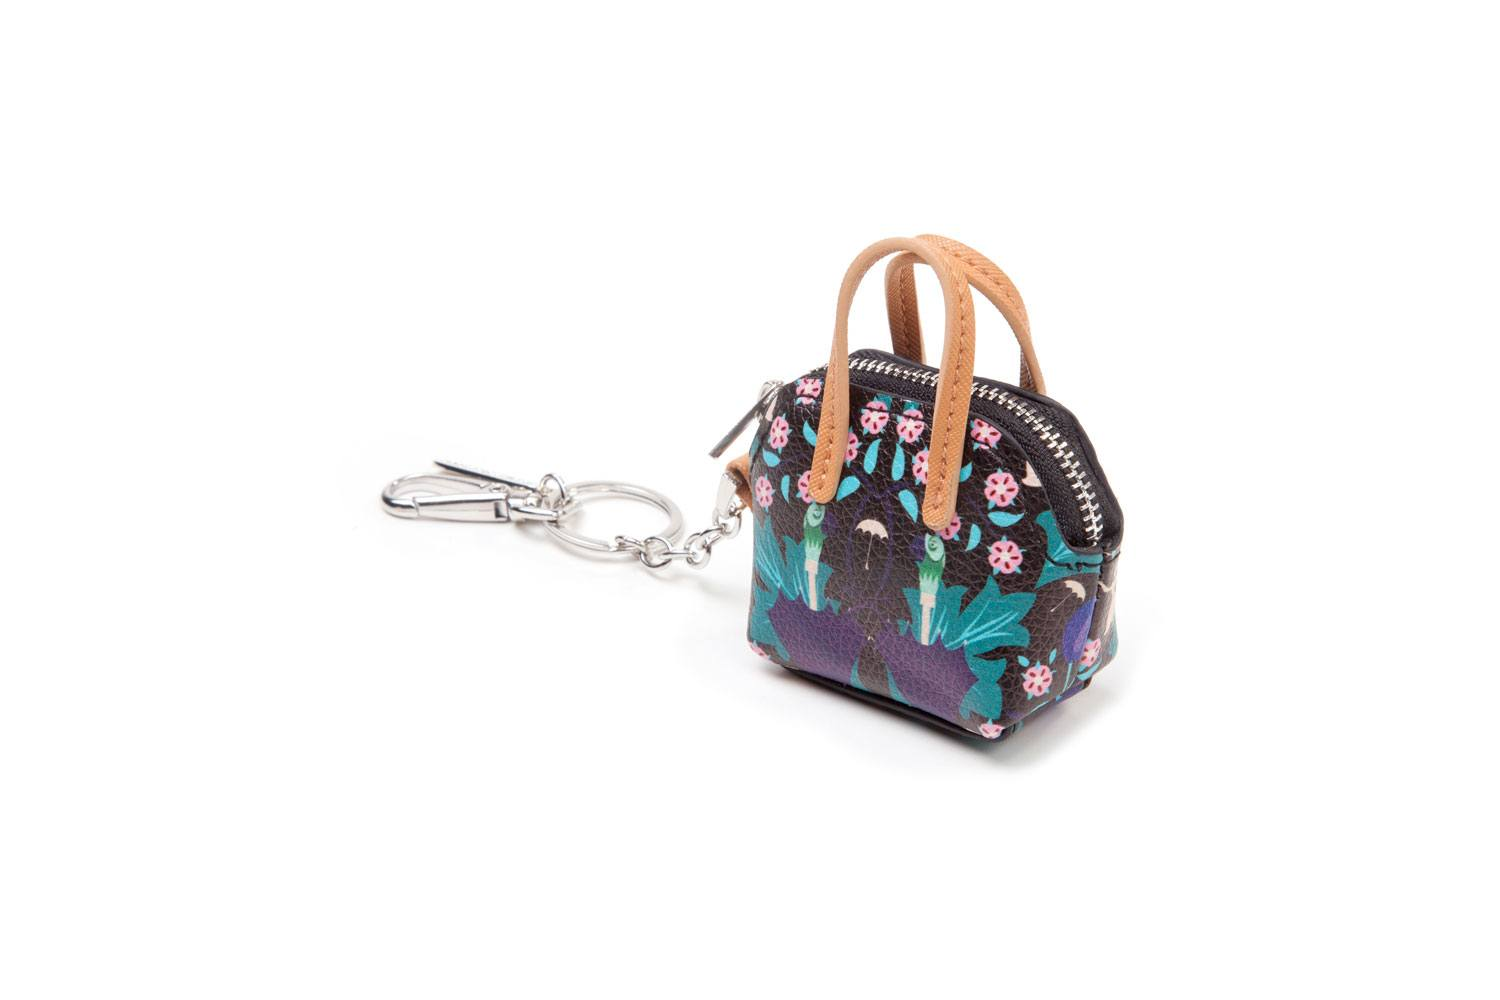 Disney Porte-monnaie avec porte-clés Mary Poppins Mini Bag (Mary Poppins)